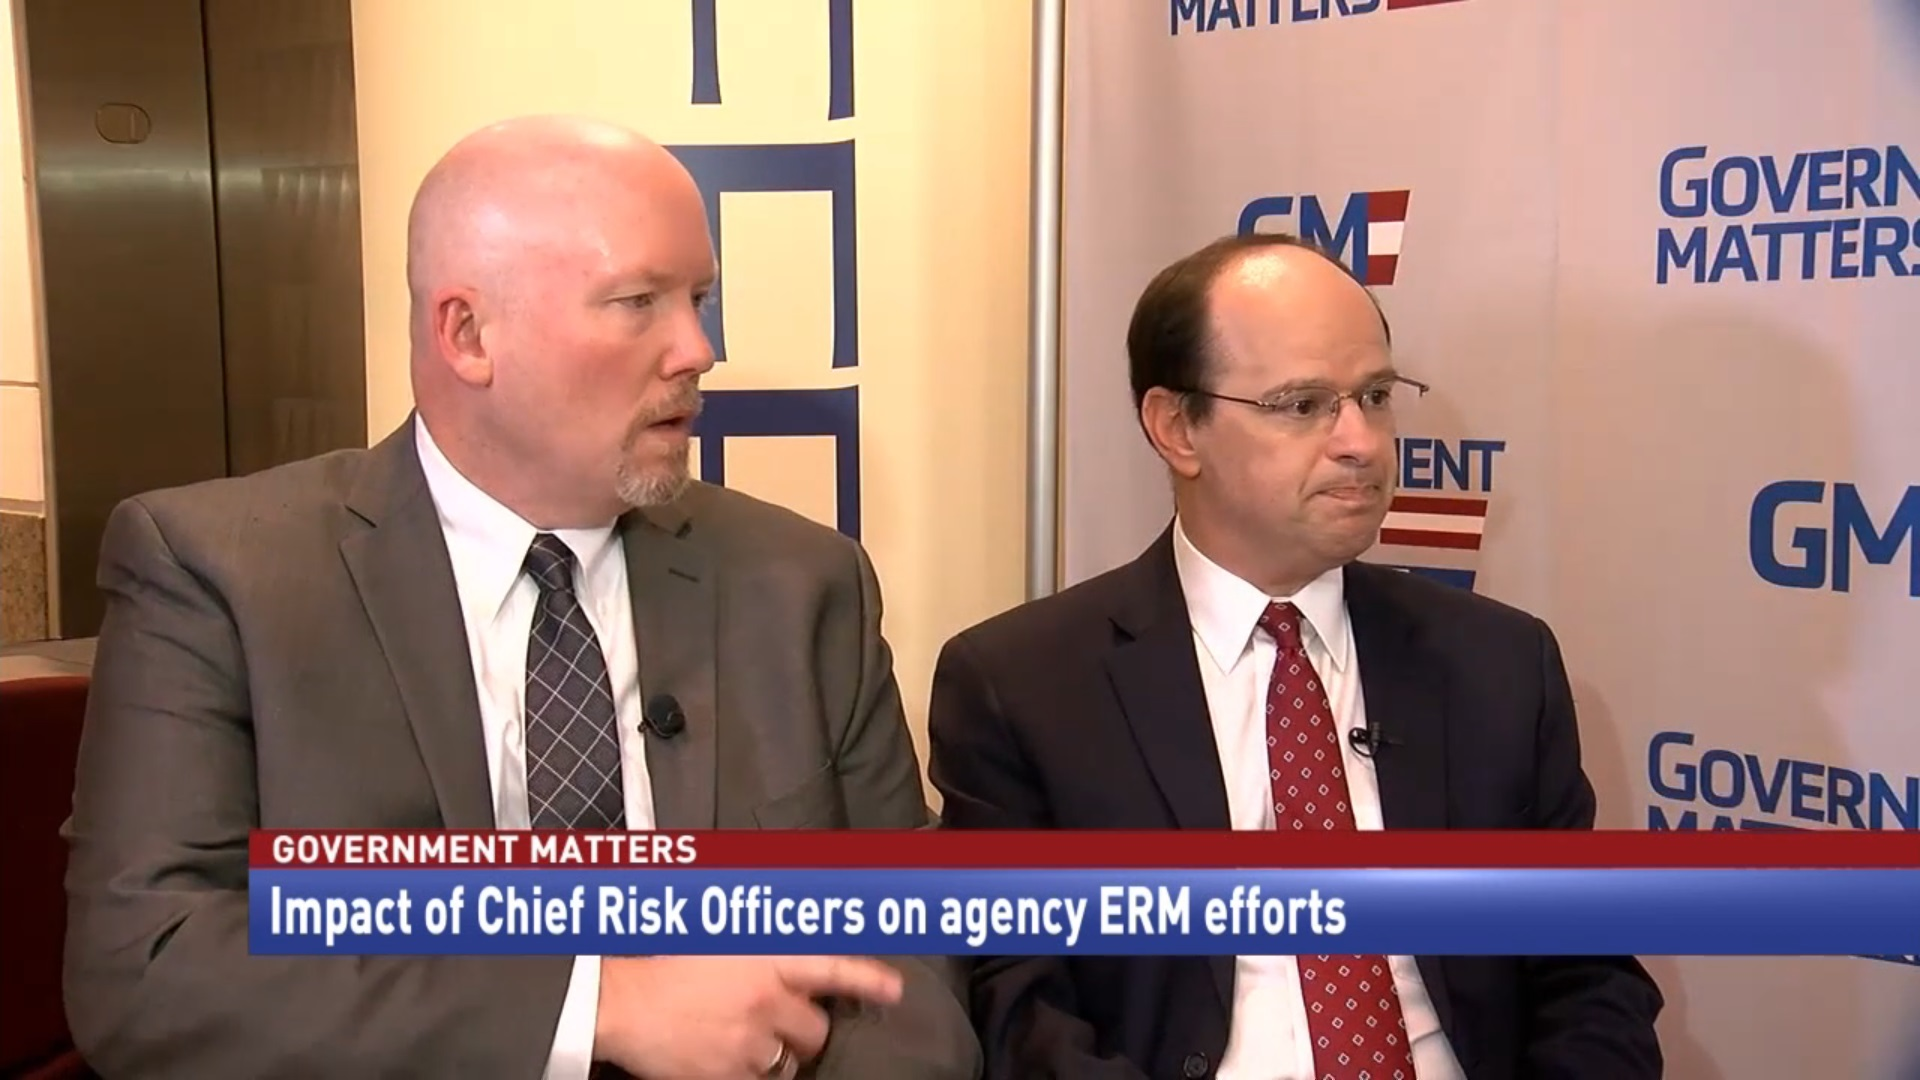 Impact of chief risk officers on agency ERM efforts